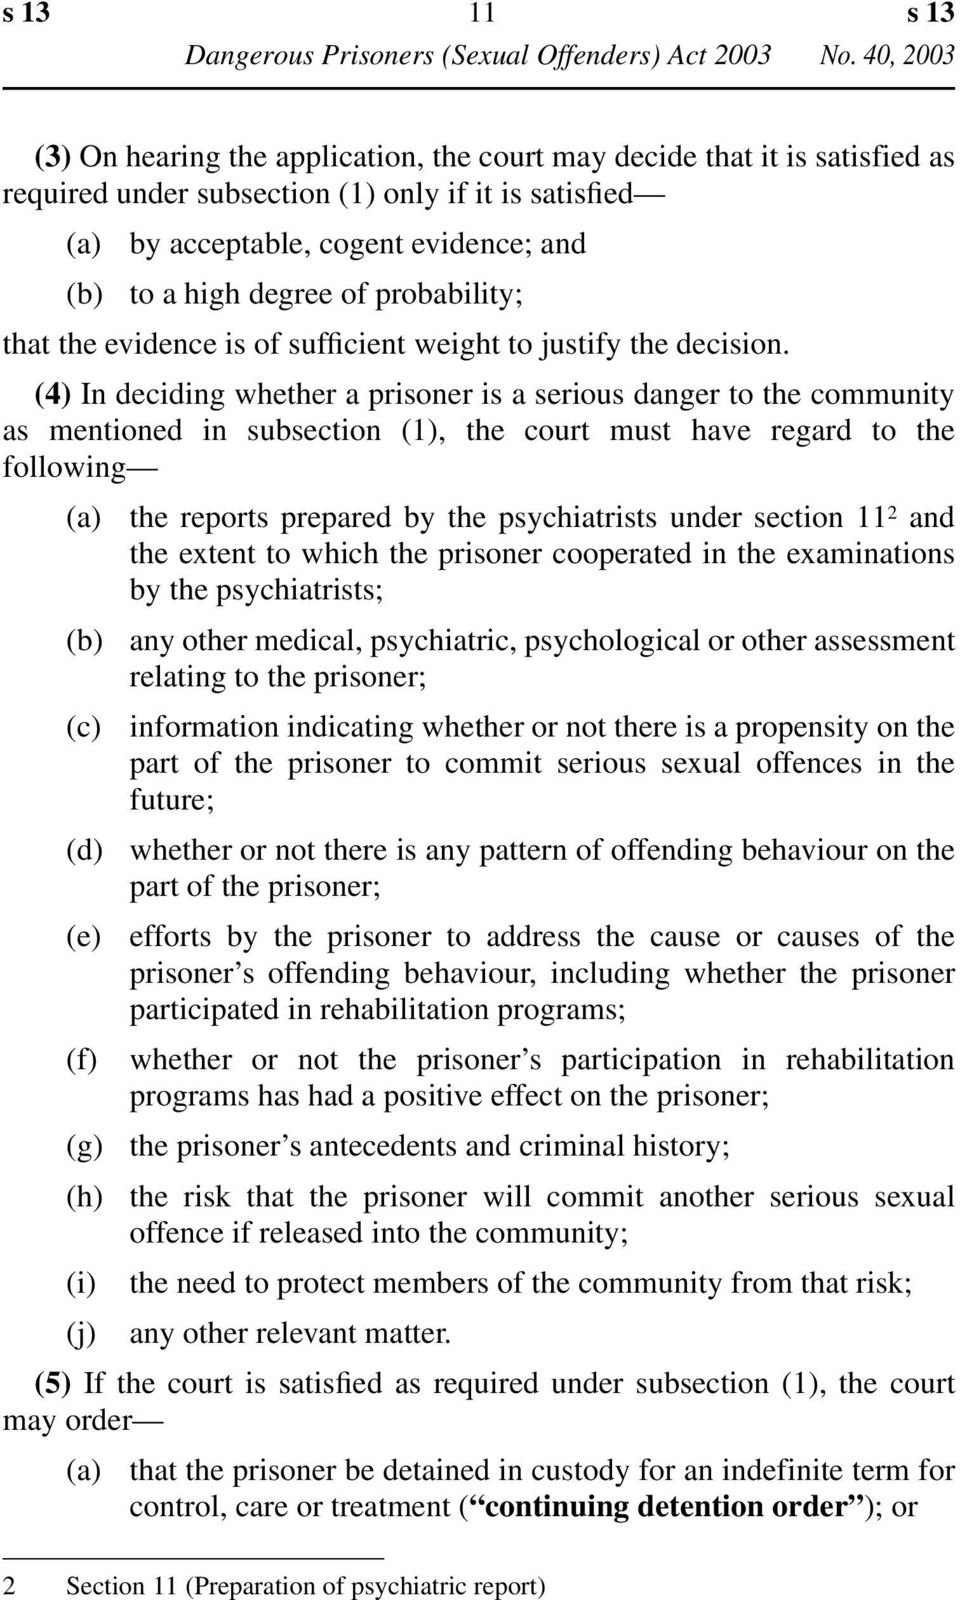 (4) In deciding whether a prisoner is a serious danger to the community as mentioned in subsection (1), the court must have regard to the following (a) the reports prepared by the psychiatrists under